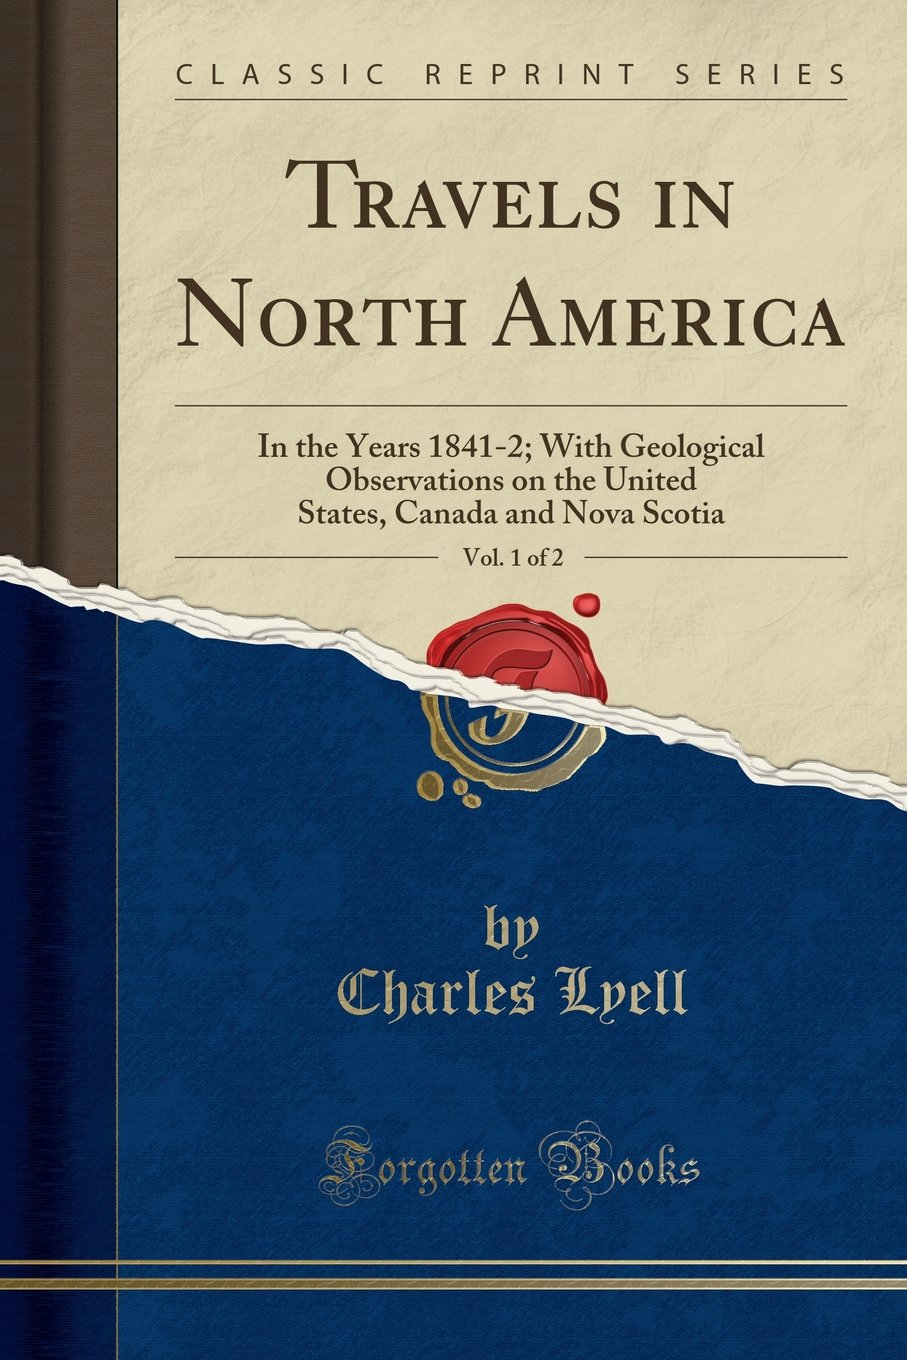 Travels in North America in the Years 1841-2, Vol. 1 of 2: With Geological Observations on the United States, Canada and Nova Scotia (Classic Reprint)